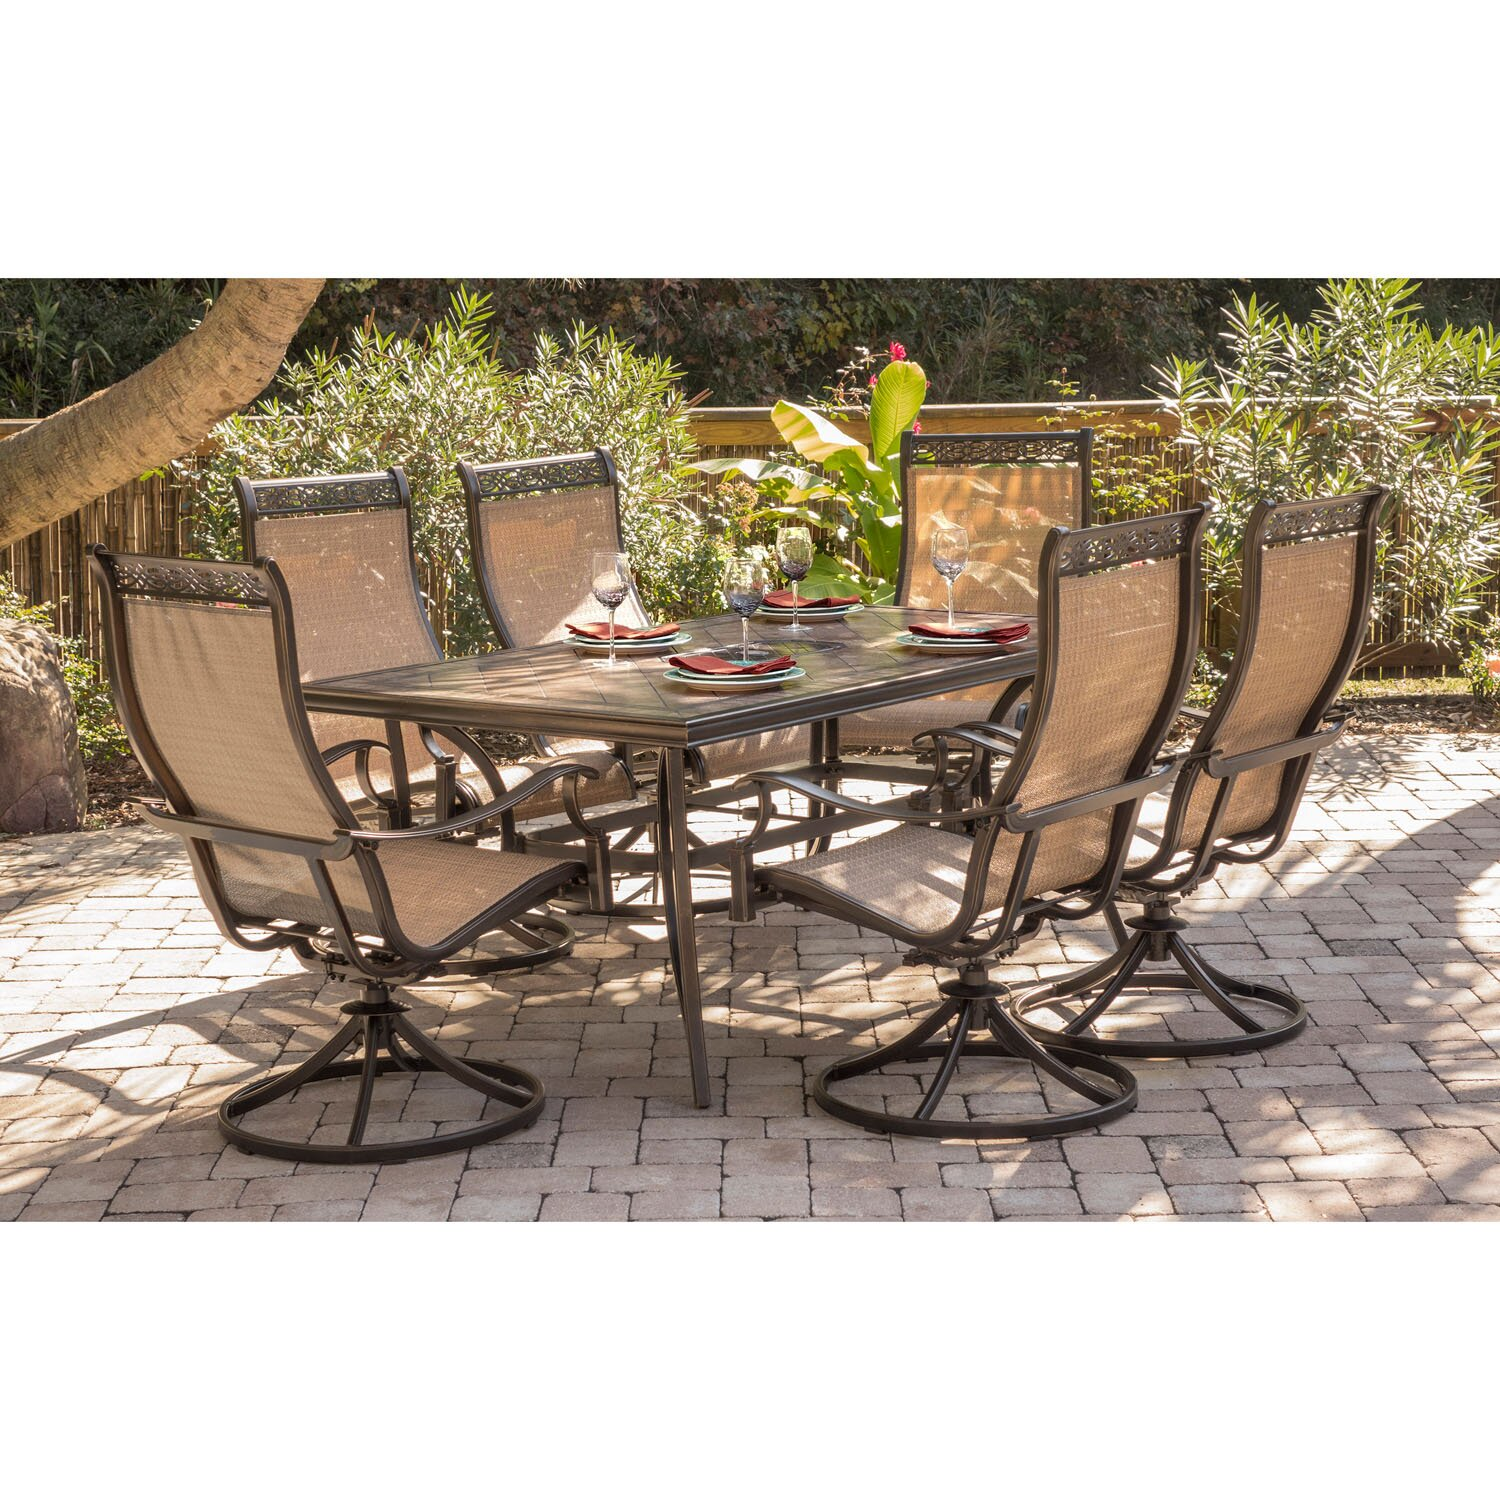 Monroe 7piece Dining Set & Reviews  Joss & Main. Octagon Patio Table Glass. Patio Furniture Pillows Covers. Round Patio Table Big Lots. Patio Furniture Ottomans. Ideas For Patio With Fireplace. Contemporary Patio Furniture Dallas. Paint Mesh Patio Furniture. Patio Furniture From Pallets Plans